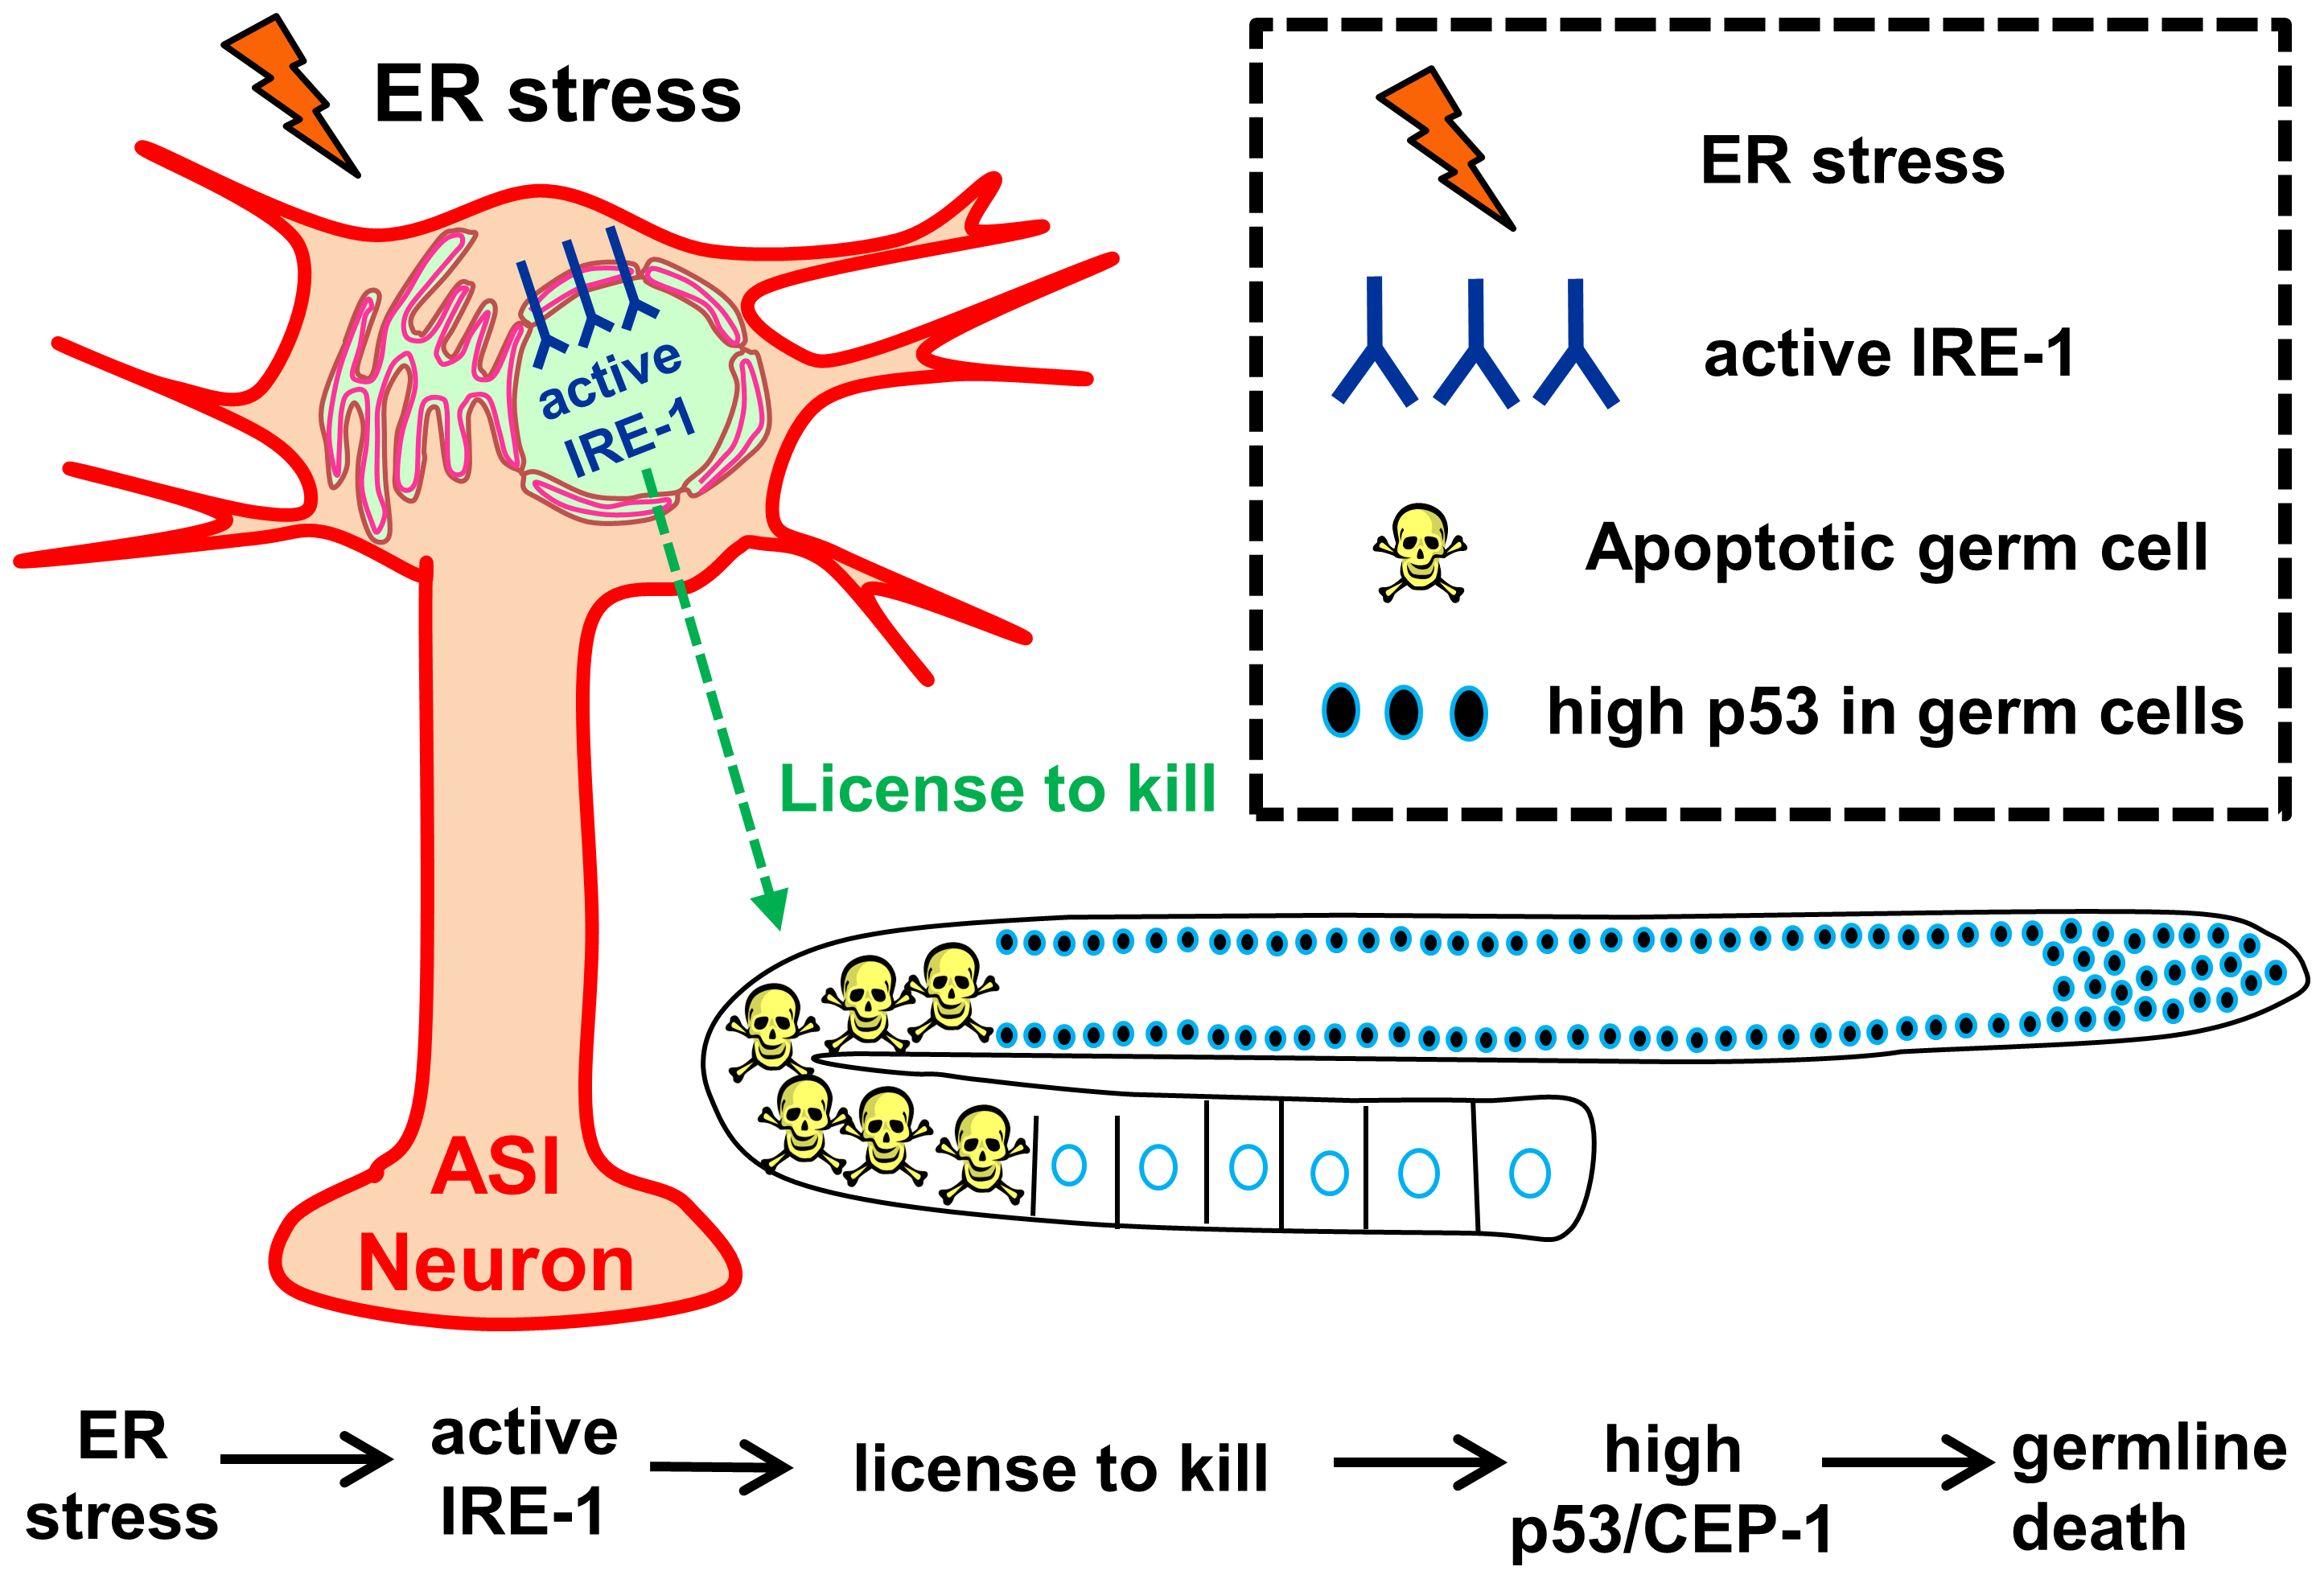 Model – Activation of IRE-1 in the ASI neurons induces germ cell apoptosis.